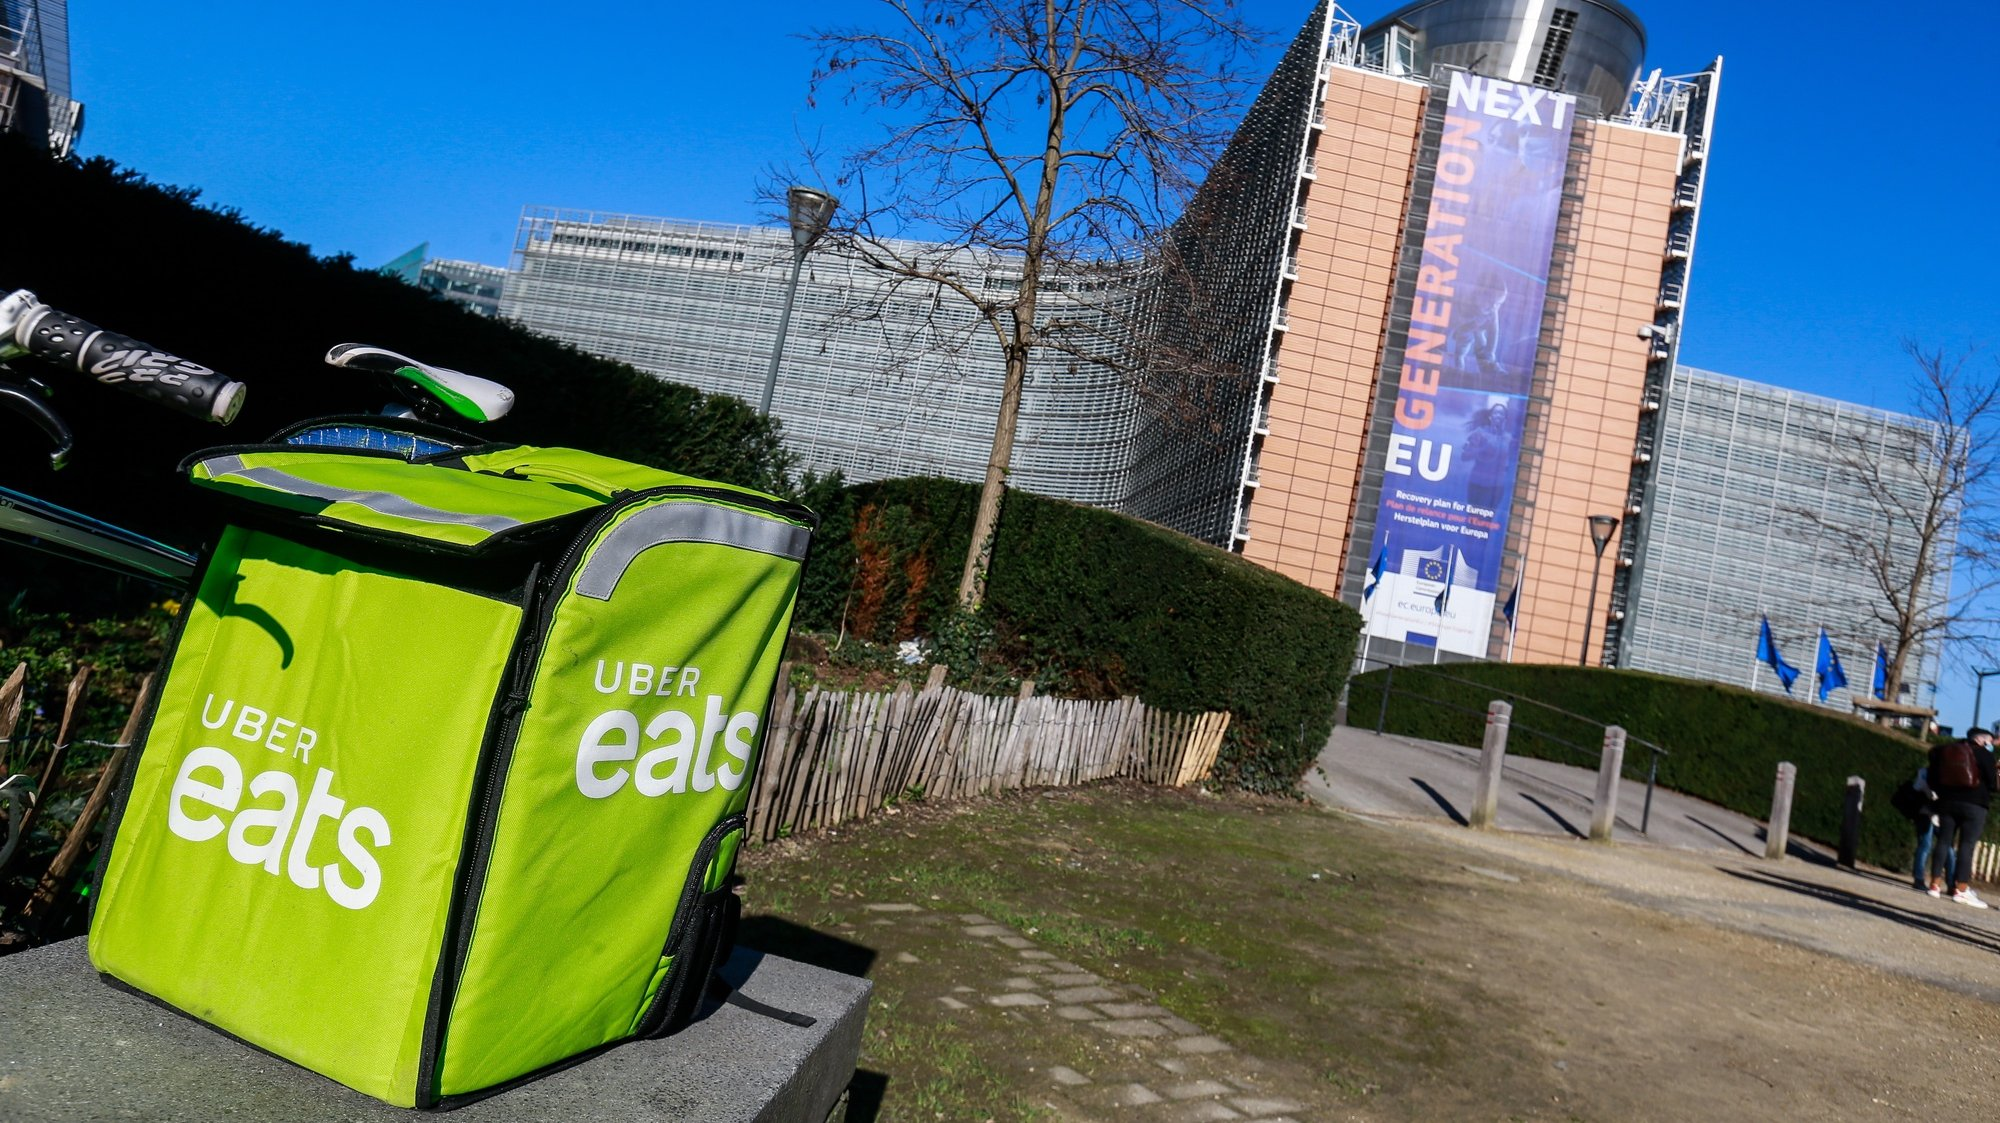 epa09033370 An Uber eats delivery box during the gathering of different trade union organizations for the International Platform Workers Action Day in front of the European Commission in Brussels, Belgium, 24 February 2021. The European Commission begins a consultation on 24 February in its initiative to help improve the working conditions of Platform workers. The trade unions and the Belgian courier collective call on the Commission to go in the direction of the demands and the interests of the workers, not of the platforms. The same type of action takes place in 15 different countries on the same day.  EPA/STEPHANIE LECOCQ